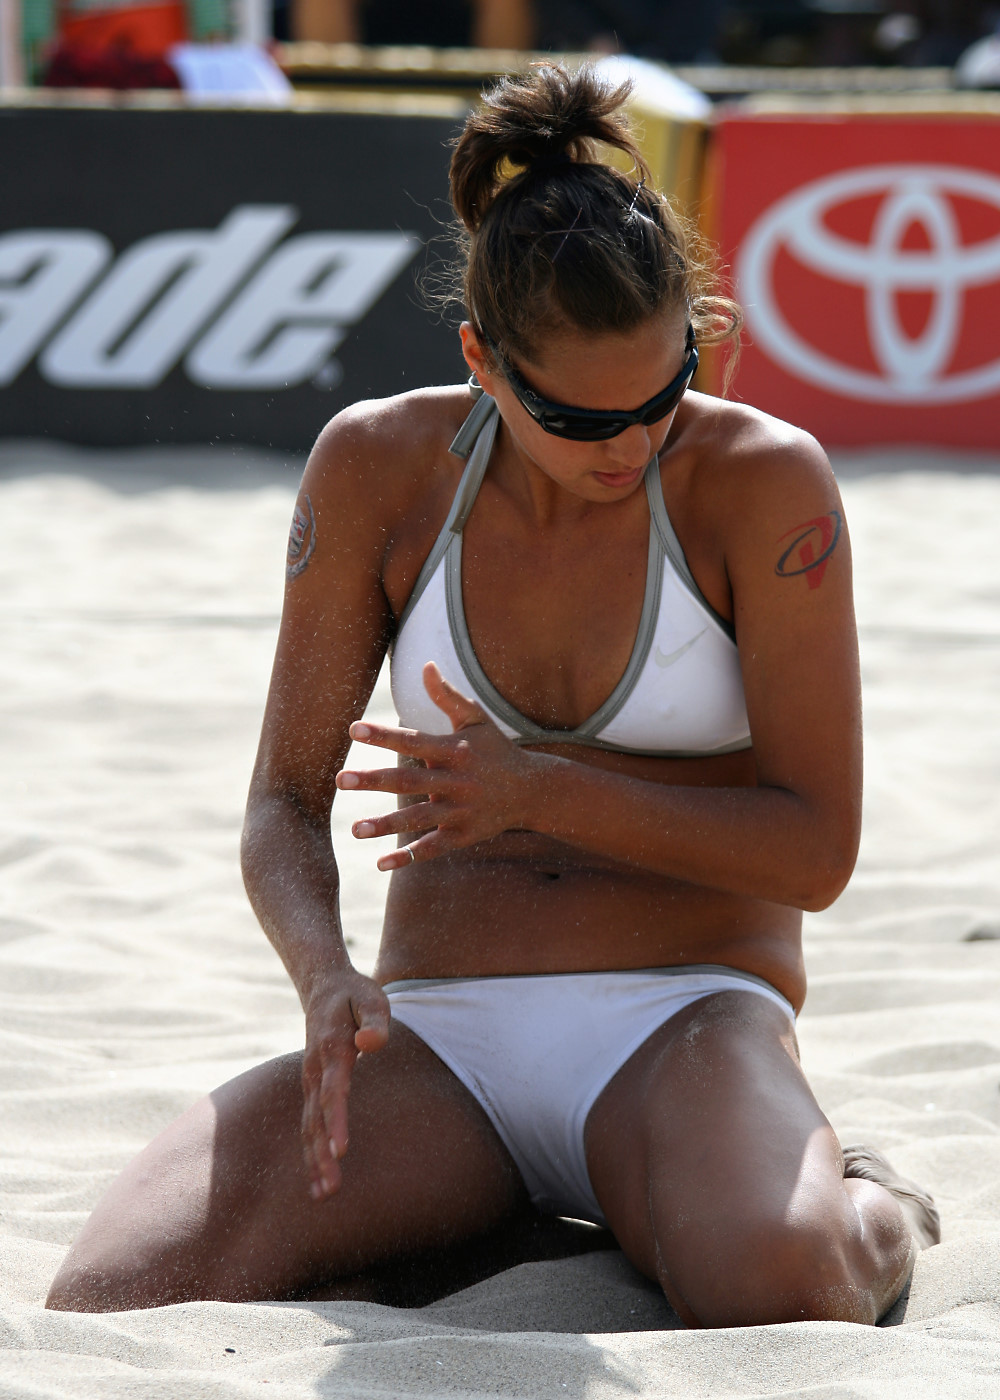 Topic regret, Sexy girl beach volleyball oops magnificent words